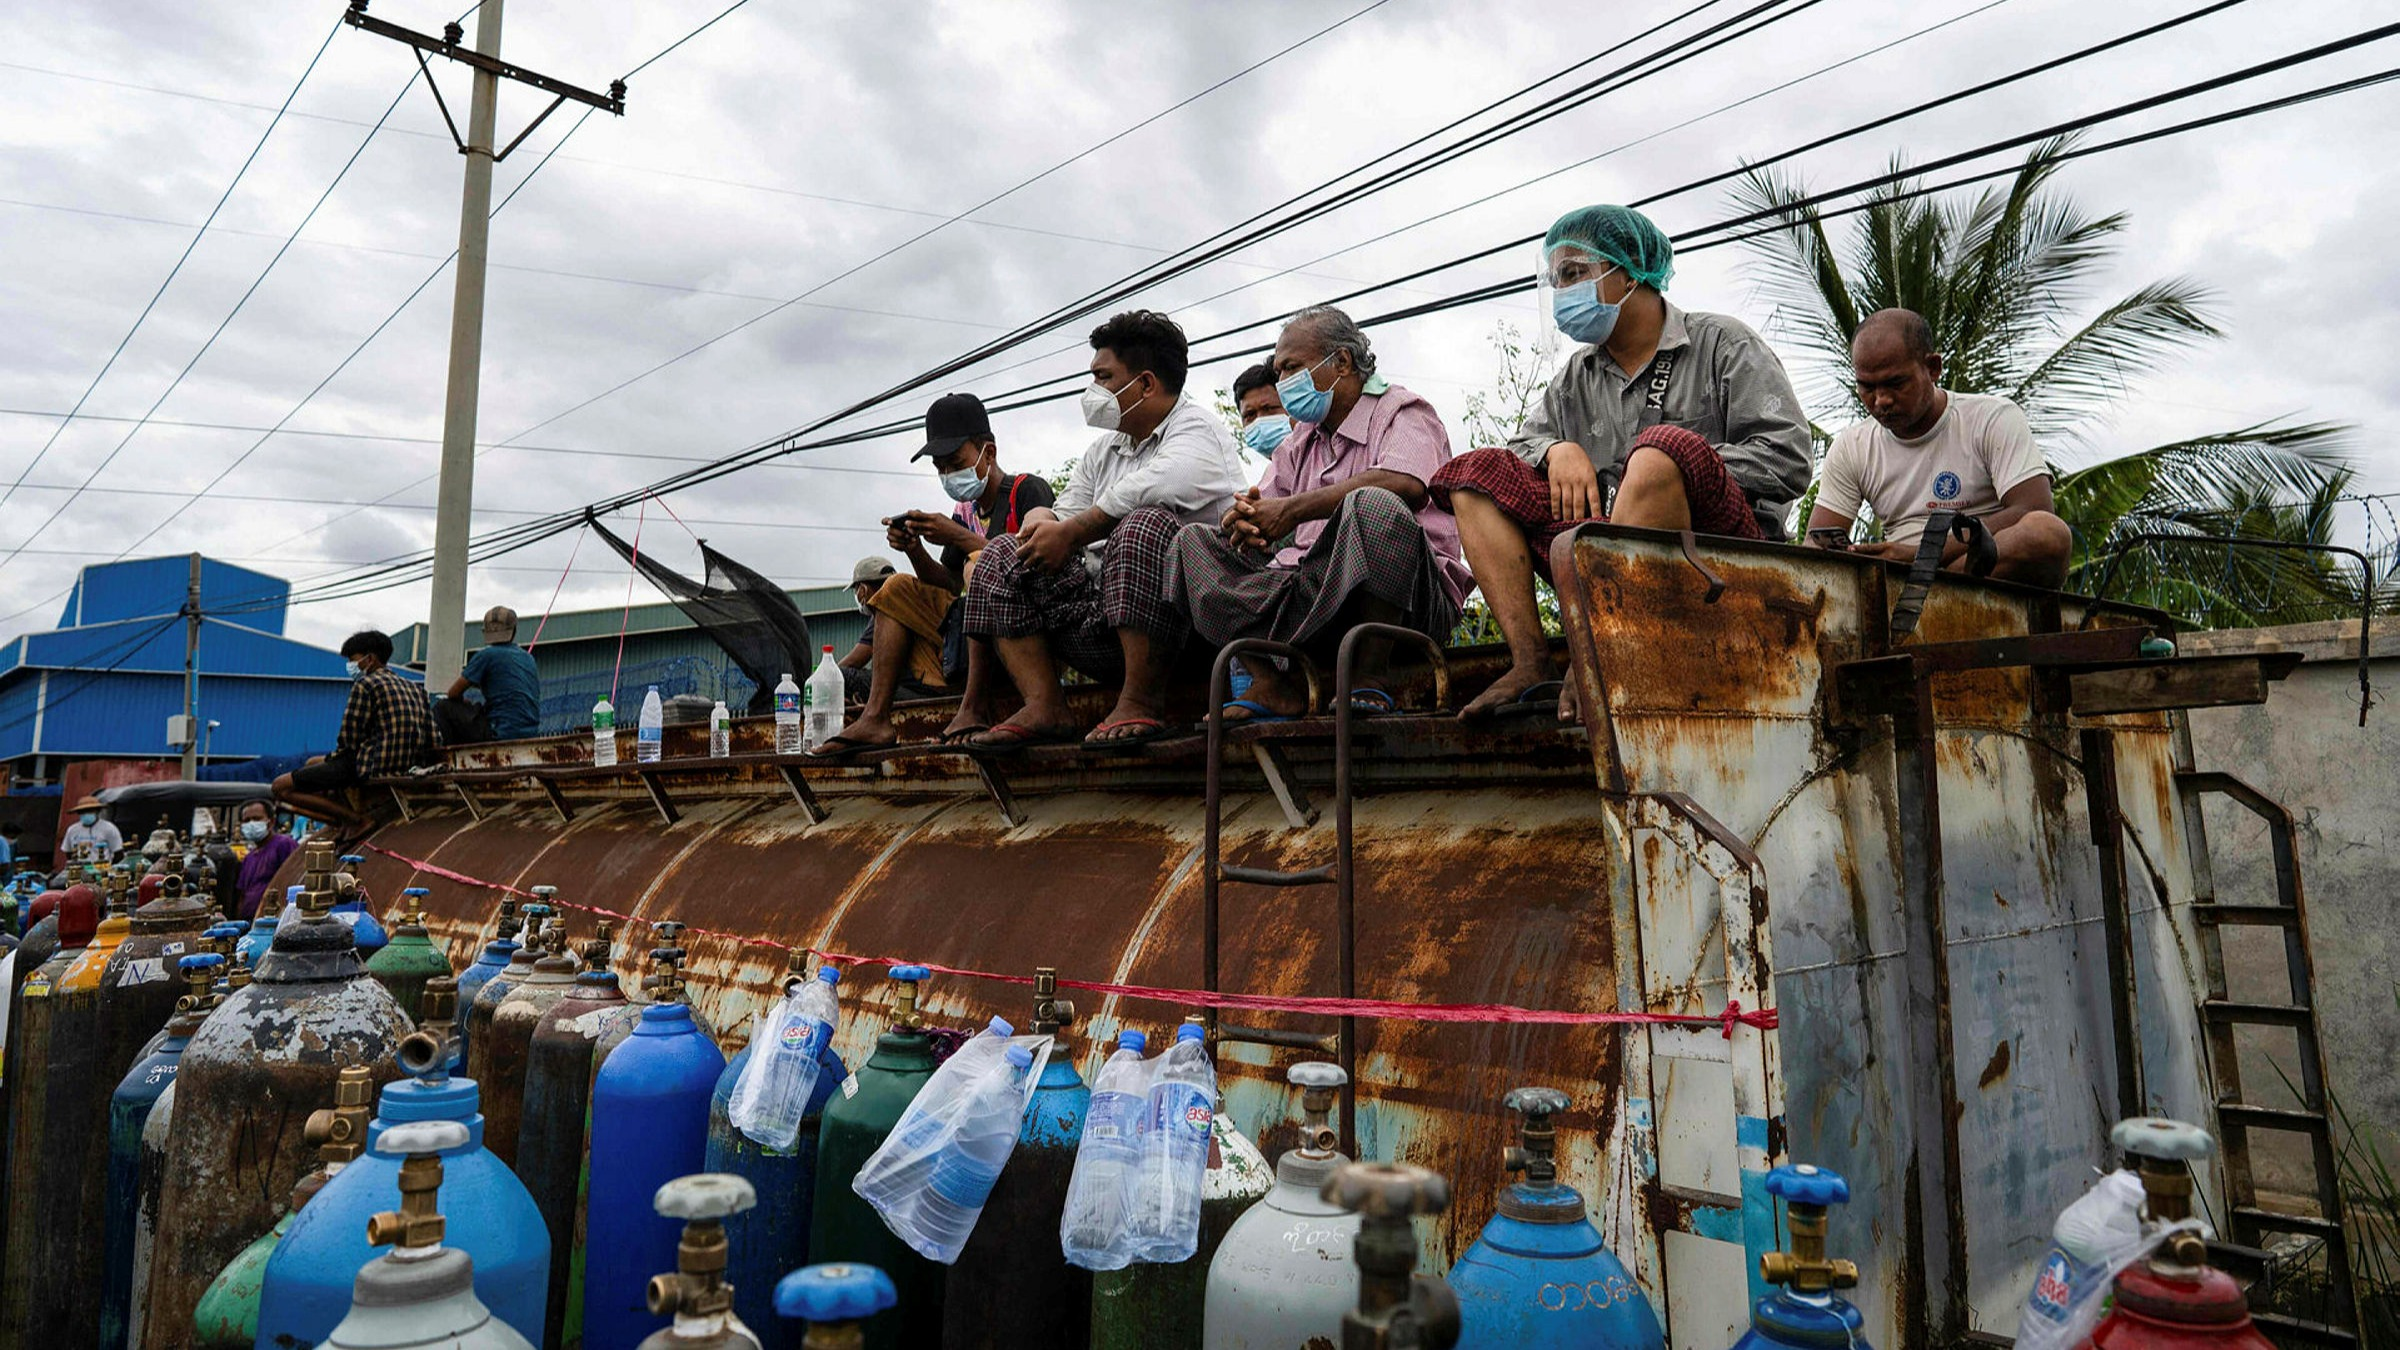 Myanmar's Covid surge fuelled by distrust of military junta | Financial Times